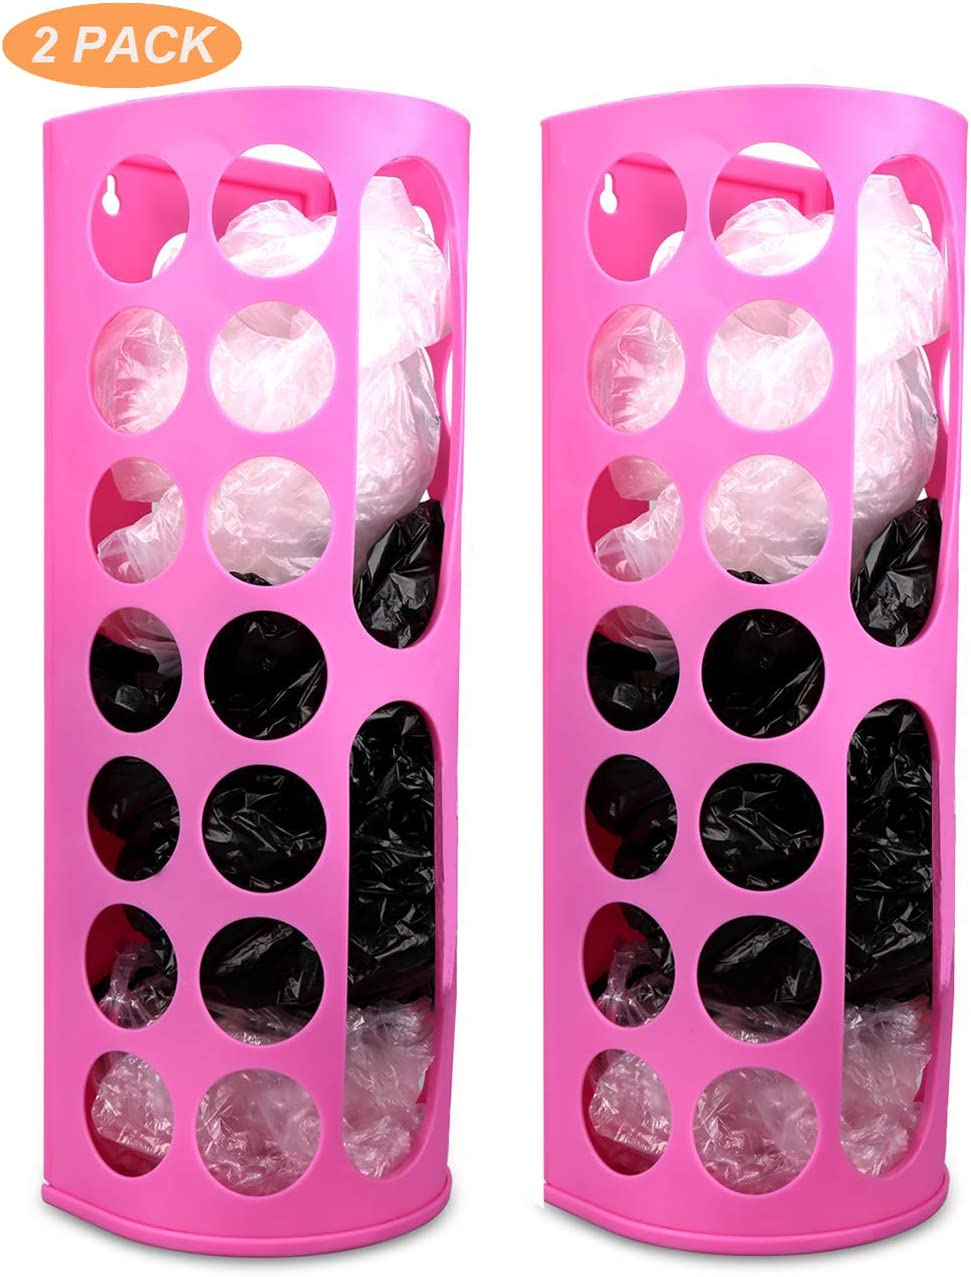 Lunies Wall Mount Bag Dispenser Large Capacity Plastic Bag Vinyl Holder - Multiple Large Holes for Easy Access Bags Great for Shopping Bags/Grocery Bags/Vinyl Storage Pink 2 Pack